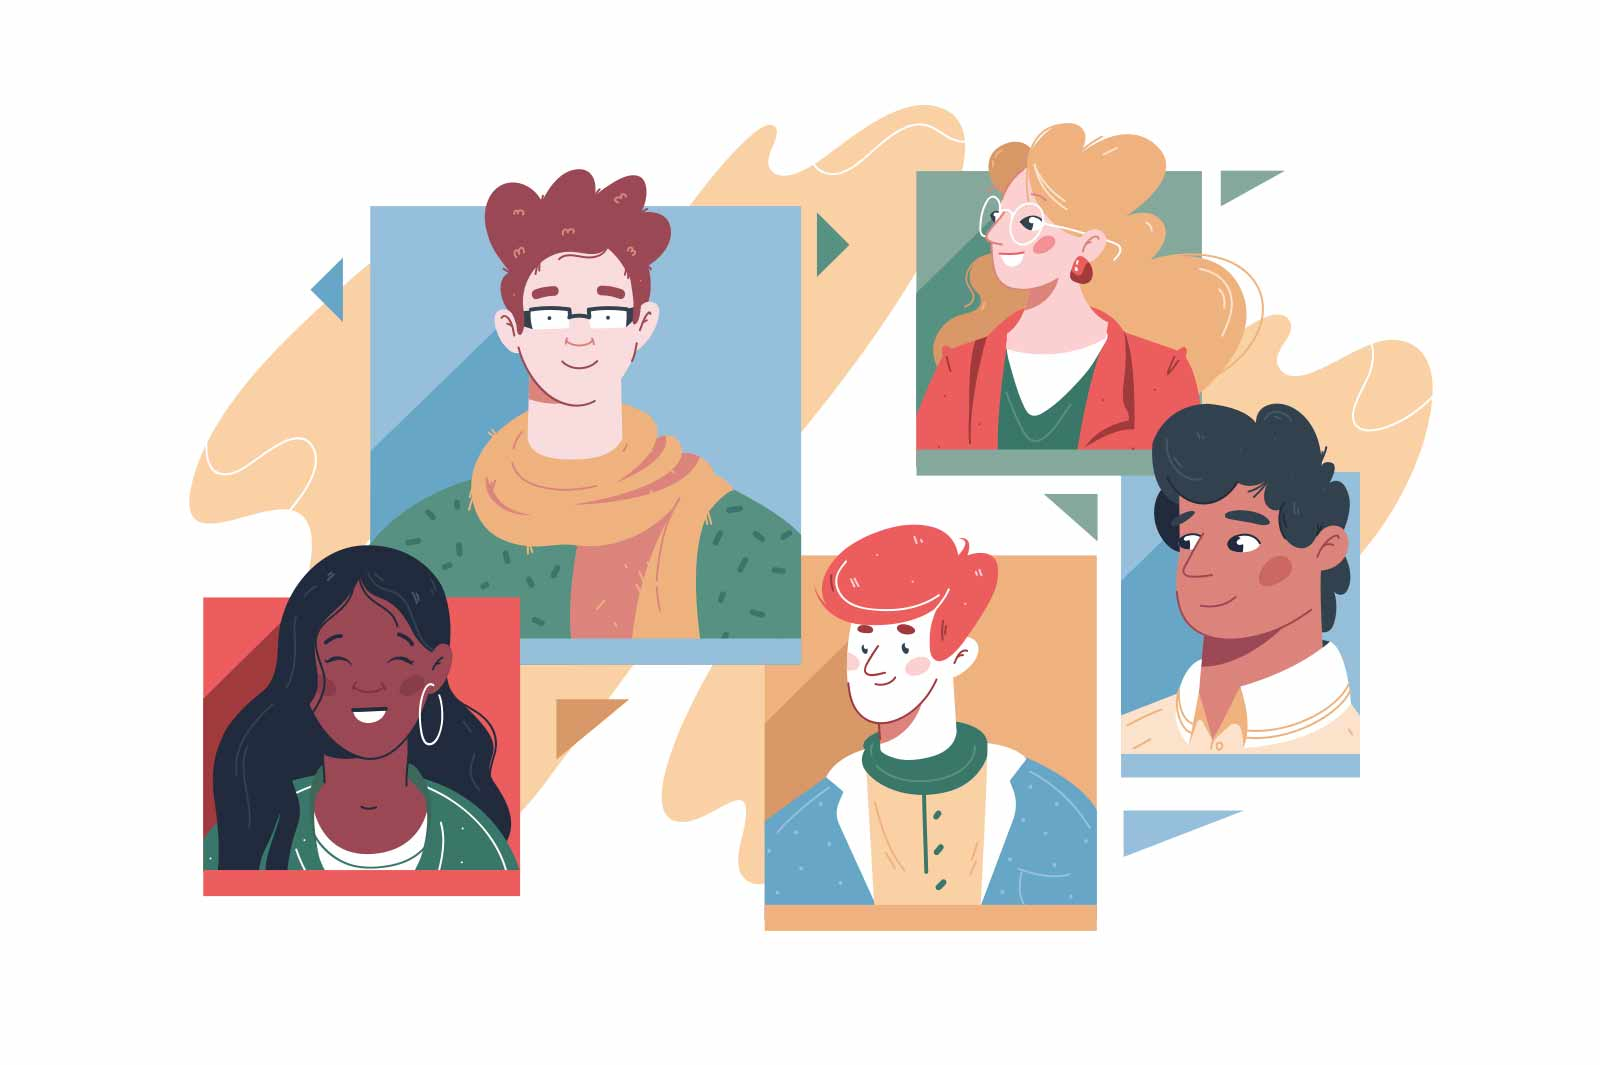 Set of different people avatars vector illustration. Diversity of men and women flat style. Internet forum, account, user picture concept